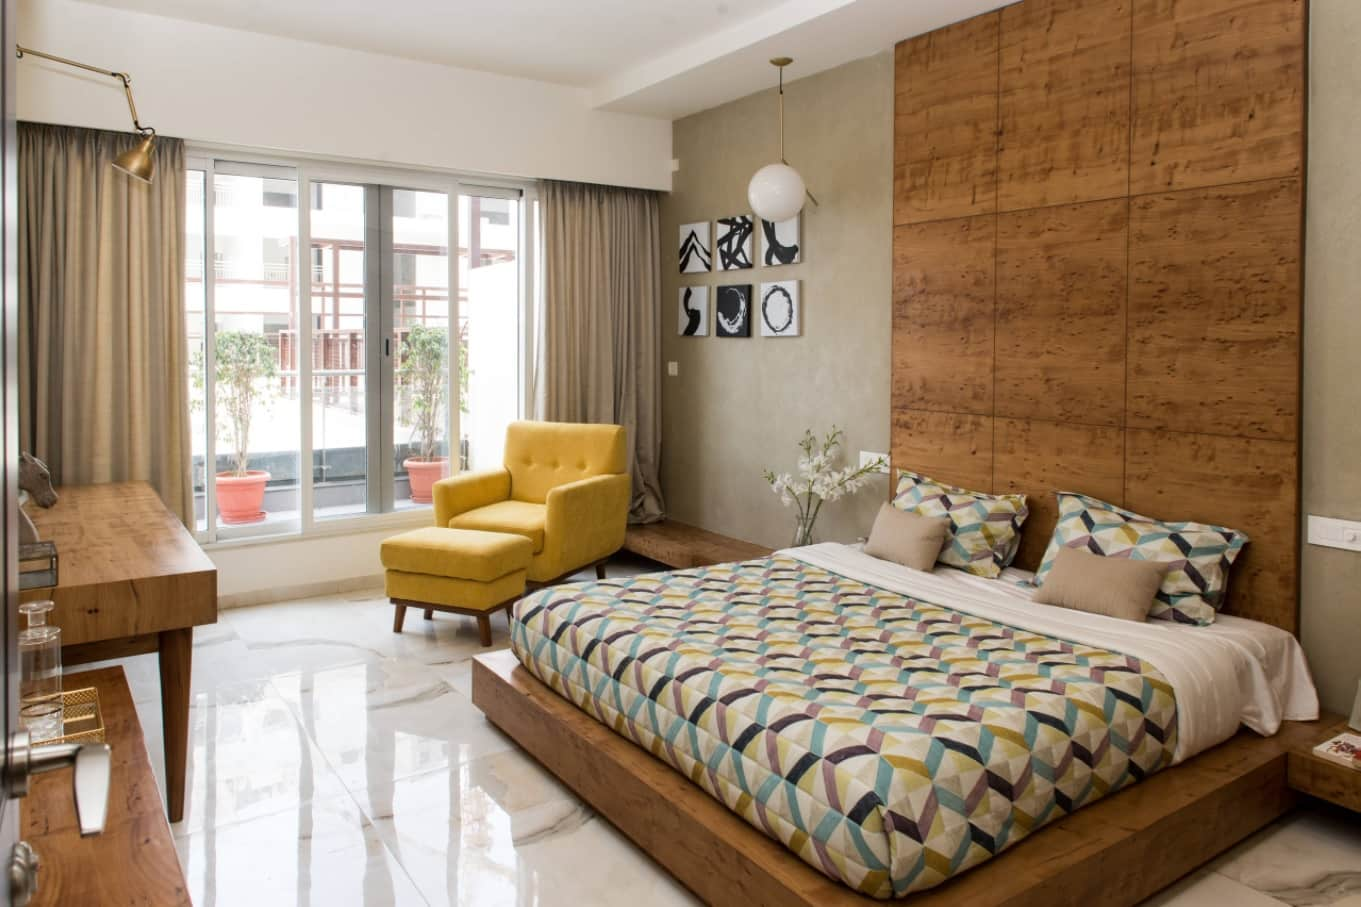 Simple and Inexpensive yet Effective Tips to Make Your Bed Luxurious. Nice combination of colors and materials in contemporary styled room